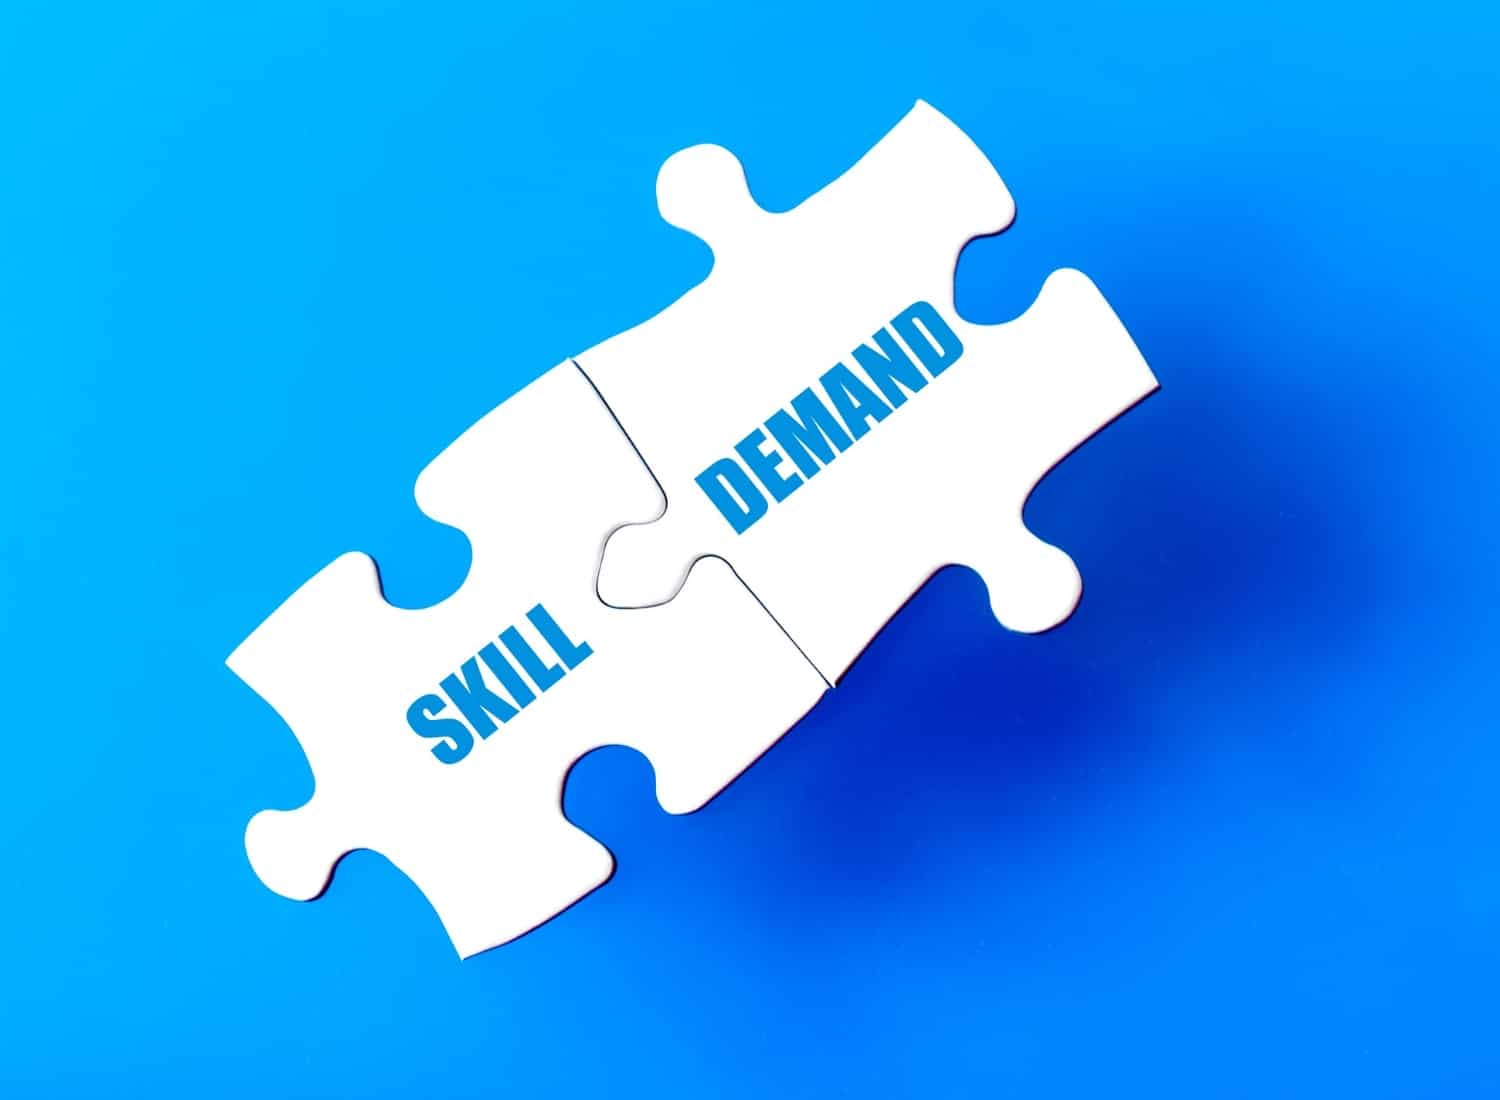 iQ Academy in demands skill in South Africa